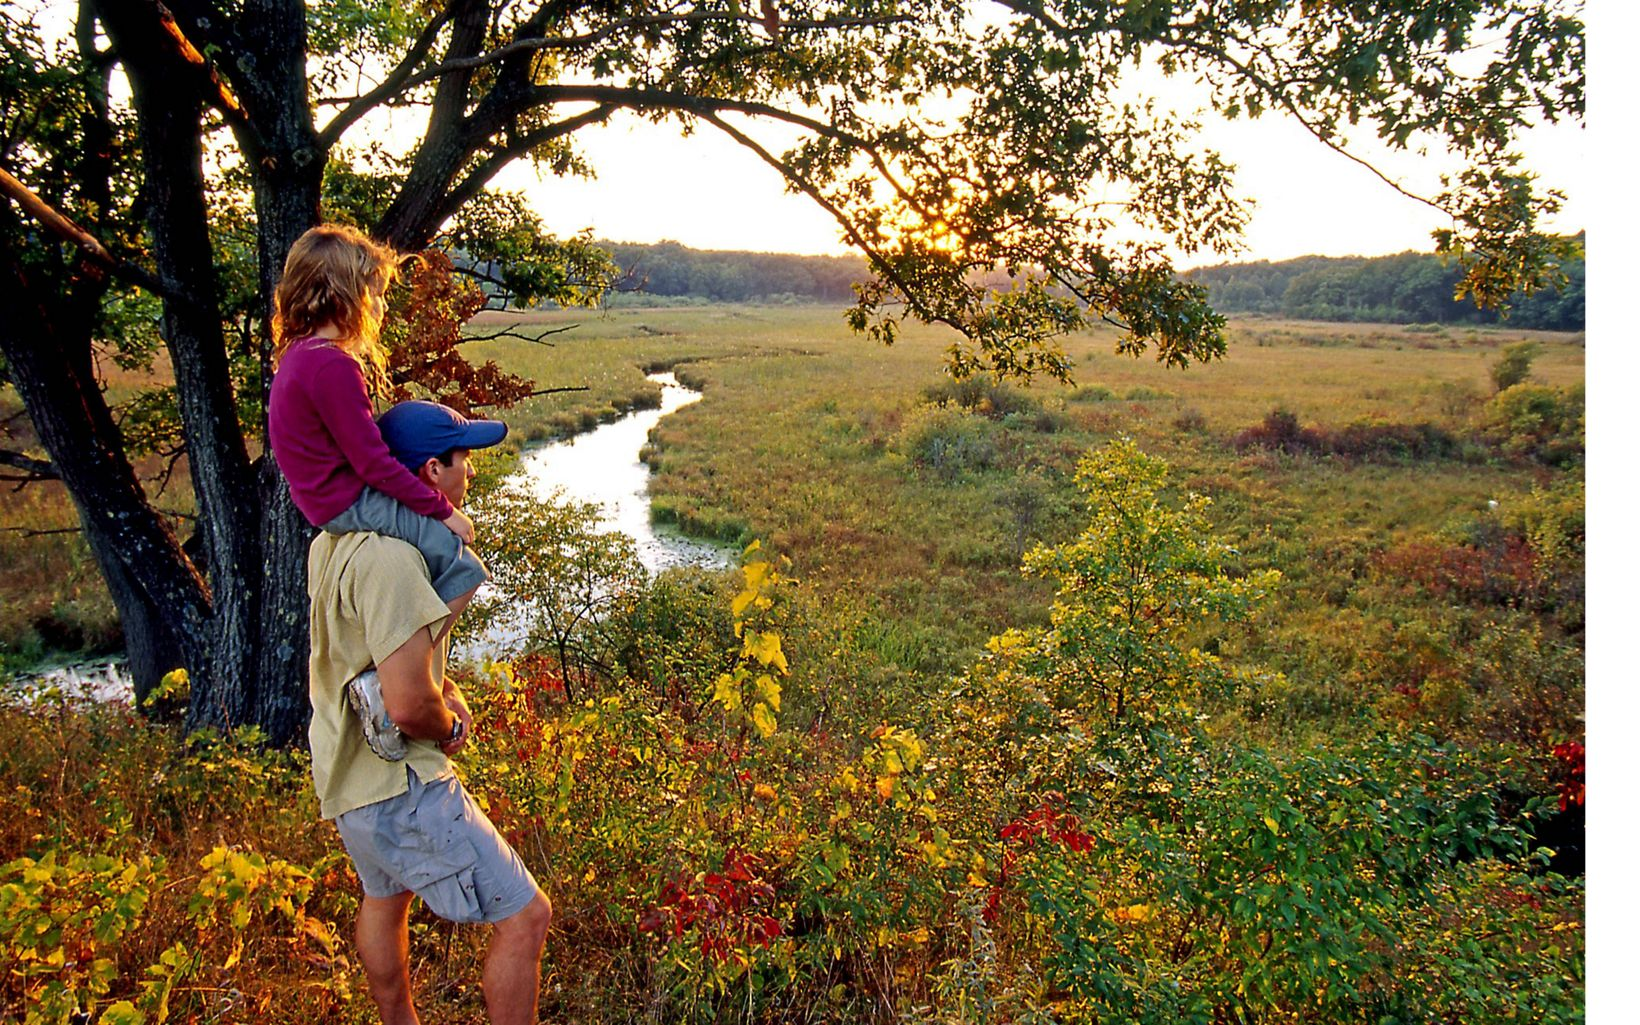 Father with young daughter on shoulders under tree looking out over wetlands in the fall